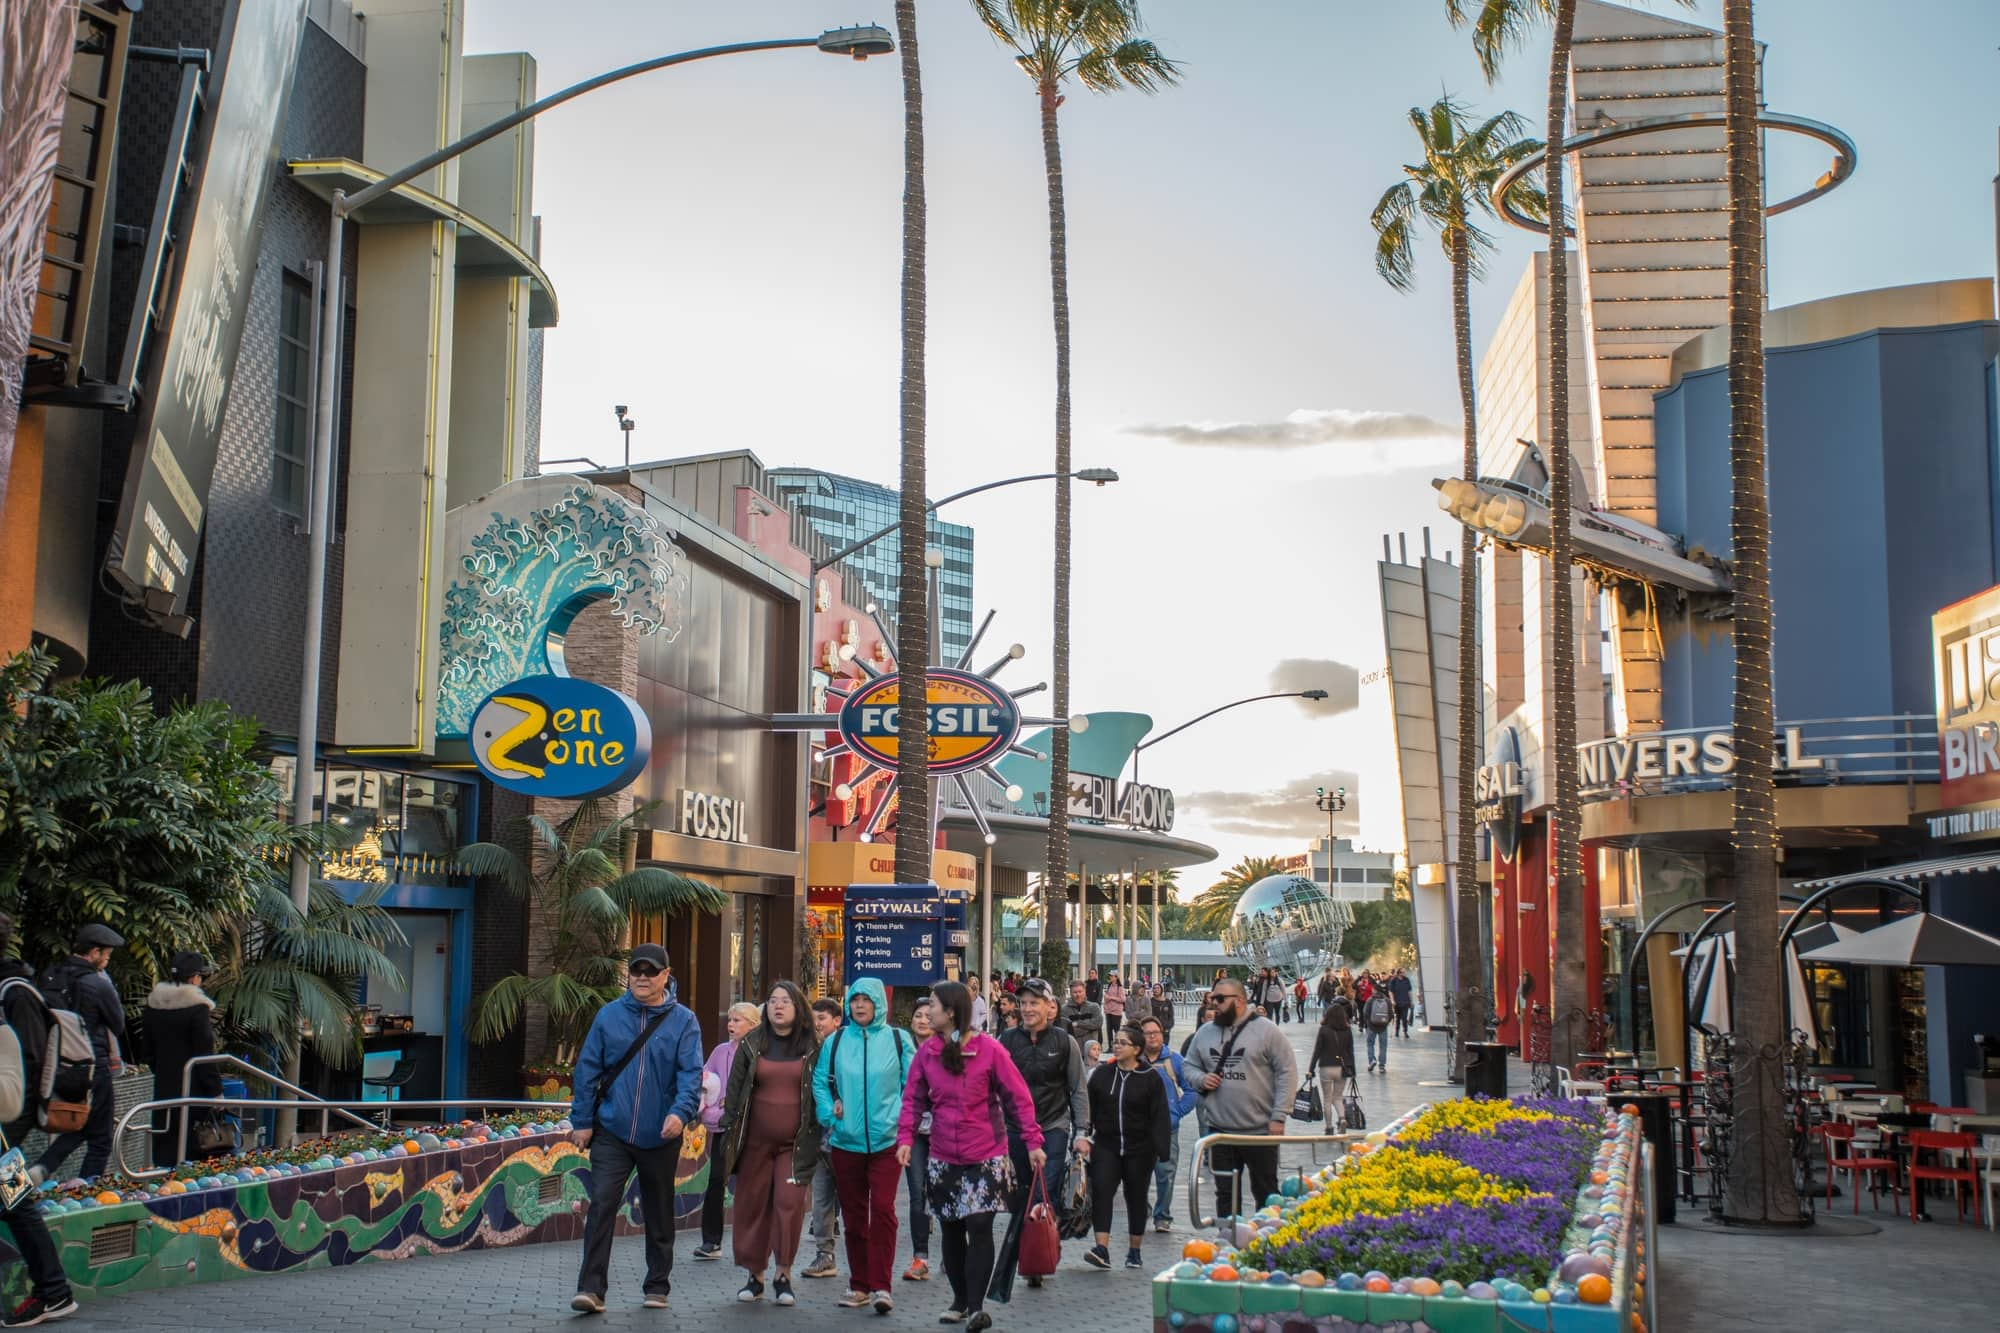 Universal CityWalk offers all sorts of dining and shopping options just outside the theme park